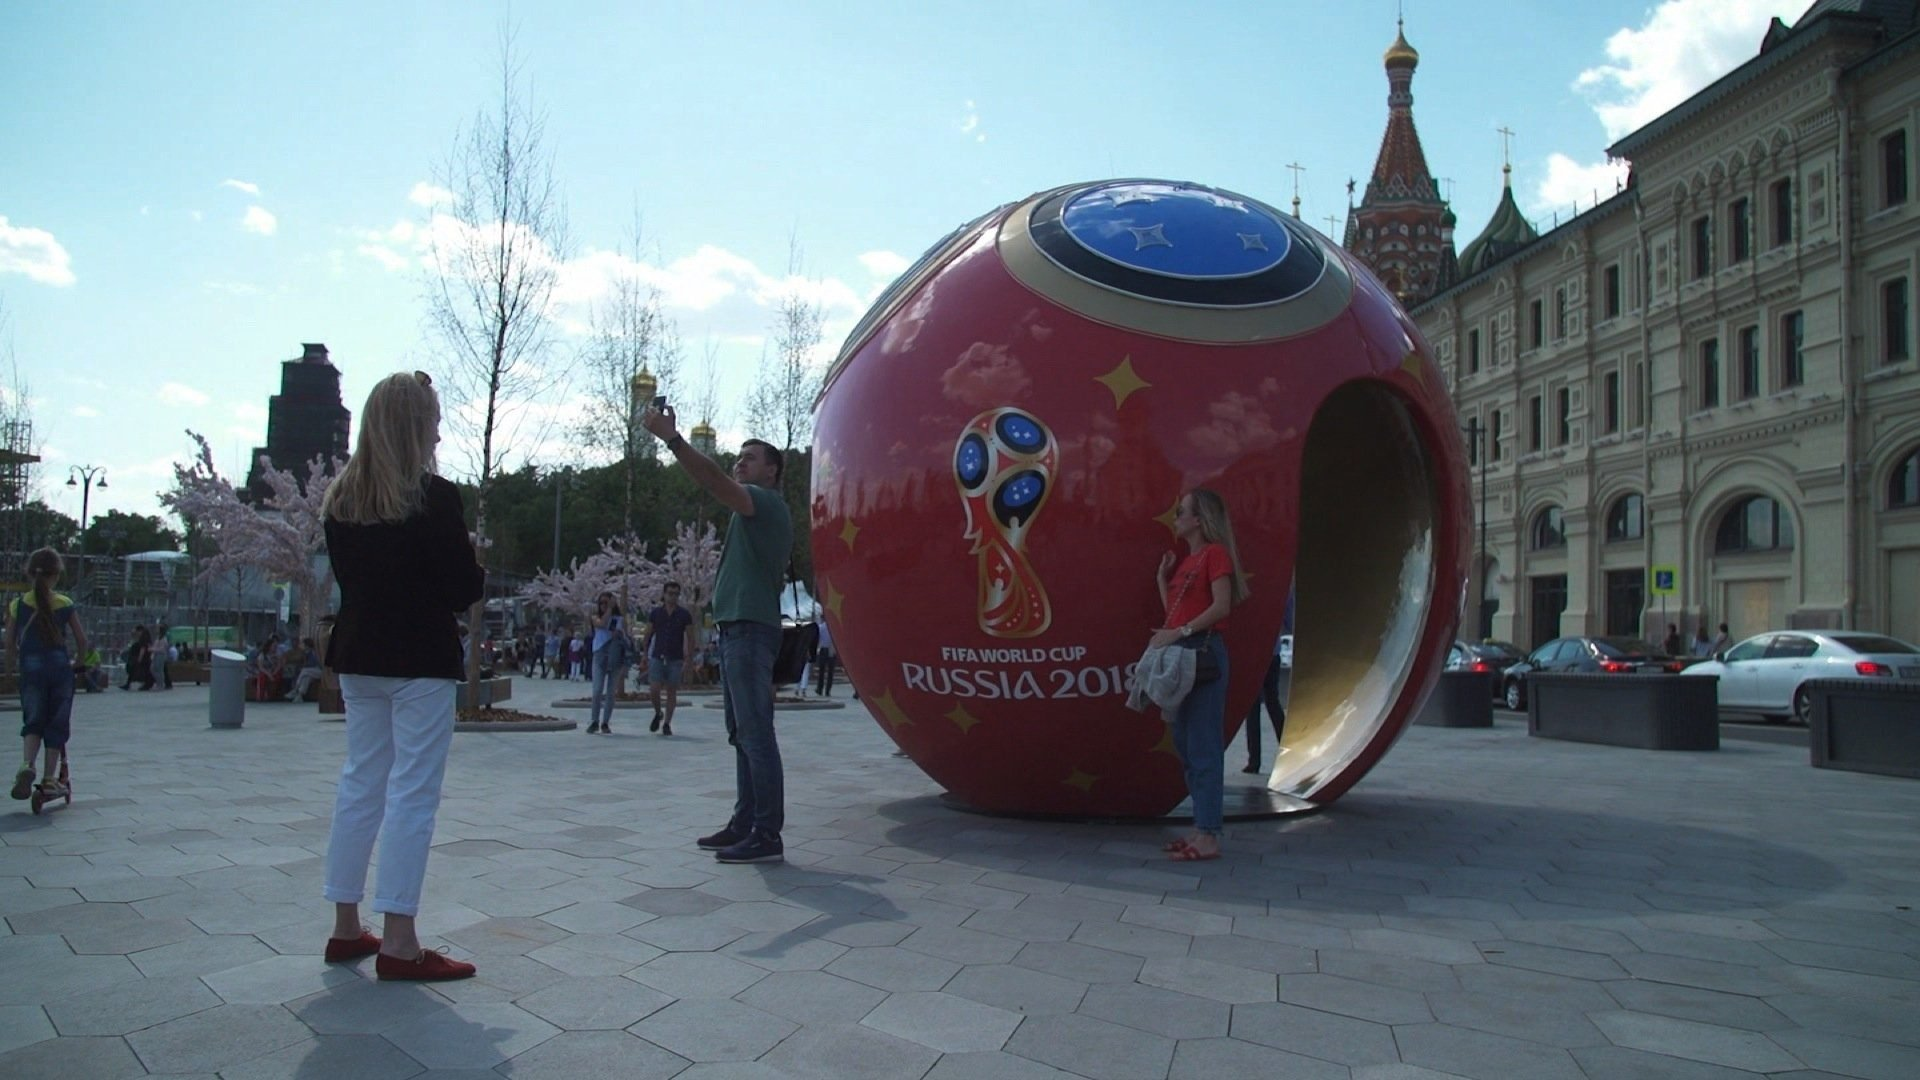 A joint North American bid has been chosen as hosts of the 2026 World Cup, following a FIFA association member vote in Moscow Wednesday.